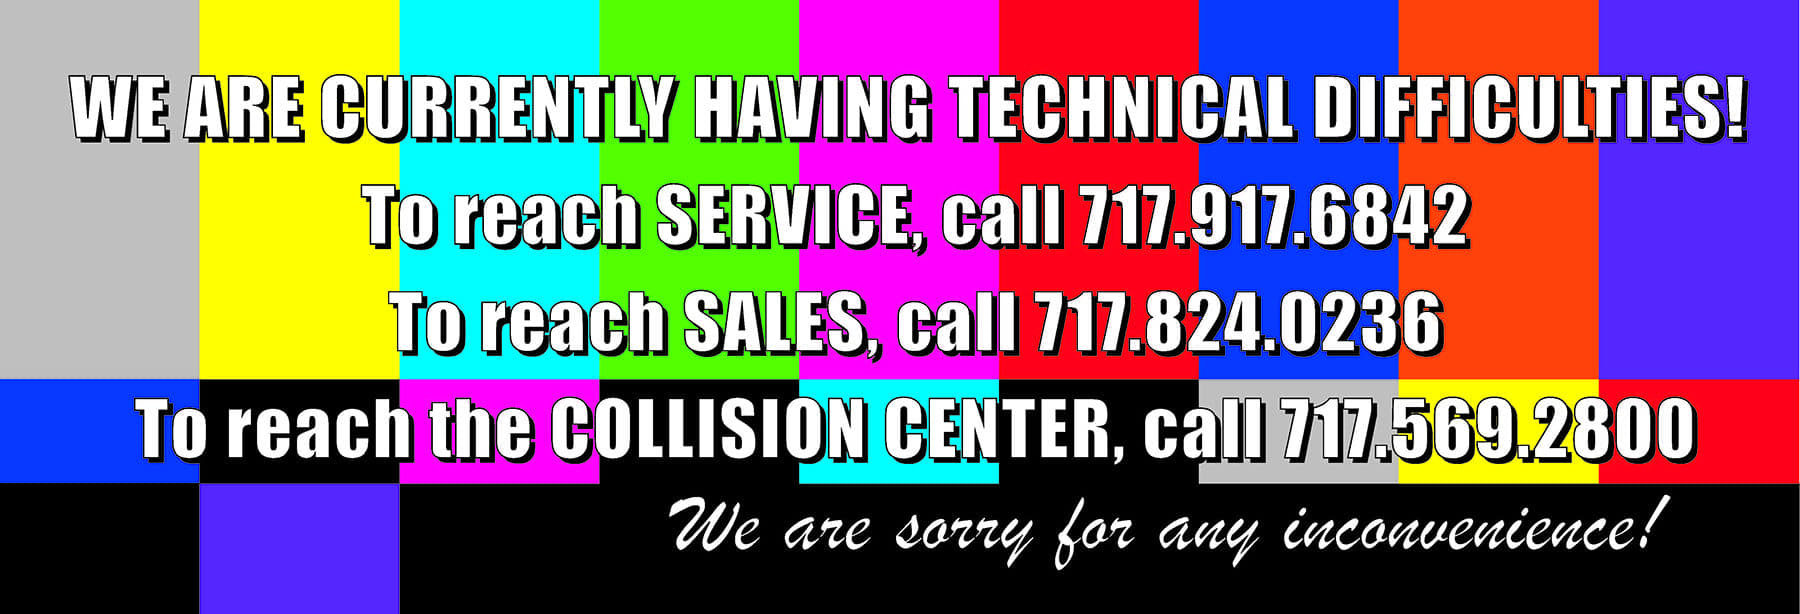 Technical Issue Banner